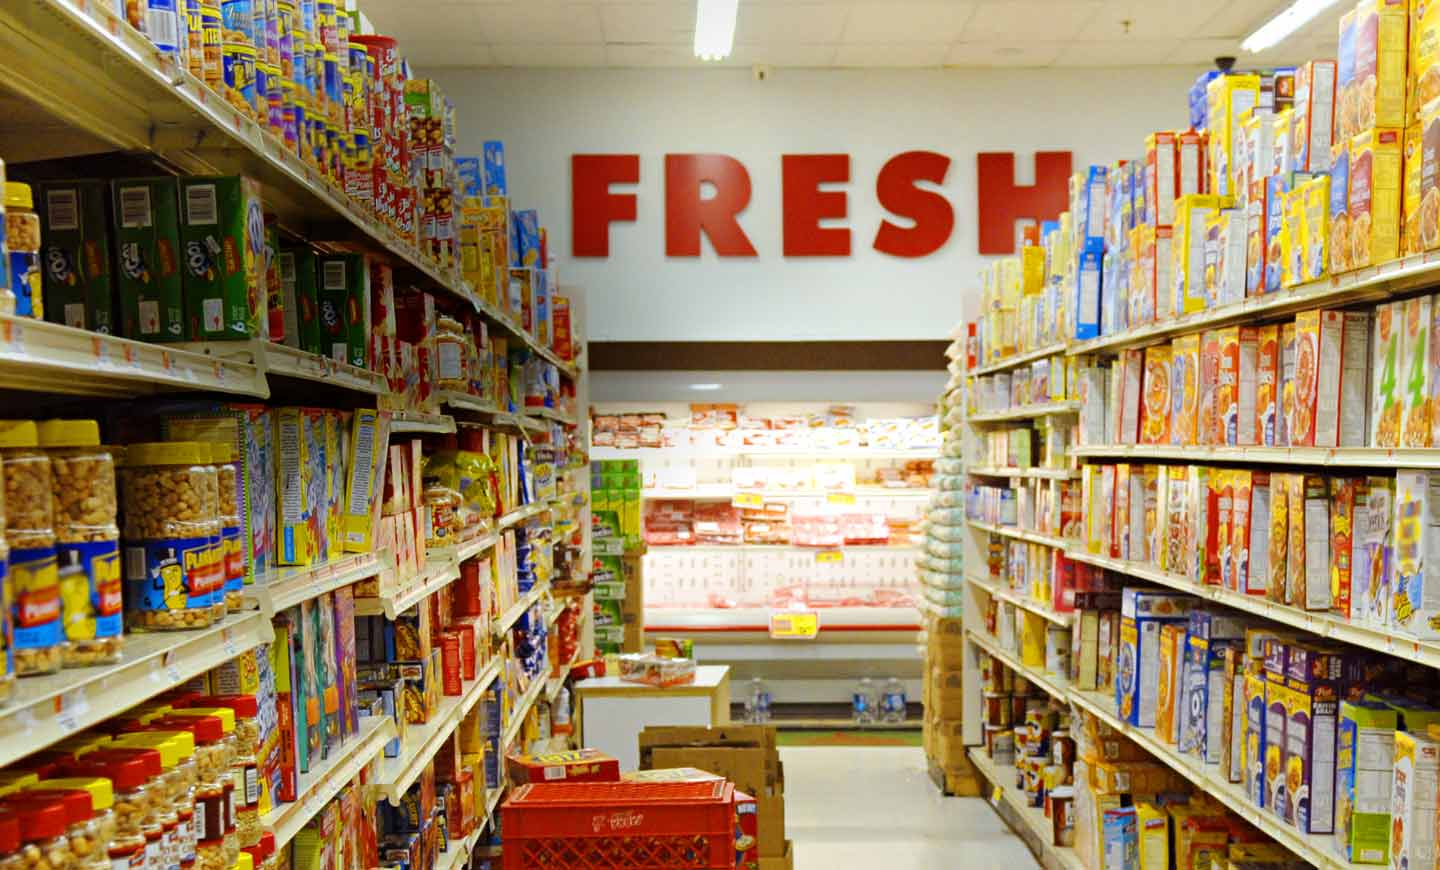 Top 20 Fast Moving Consumer Goods (FMCG) Companies in India